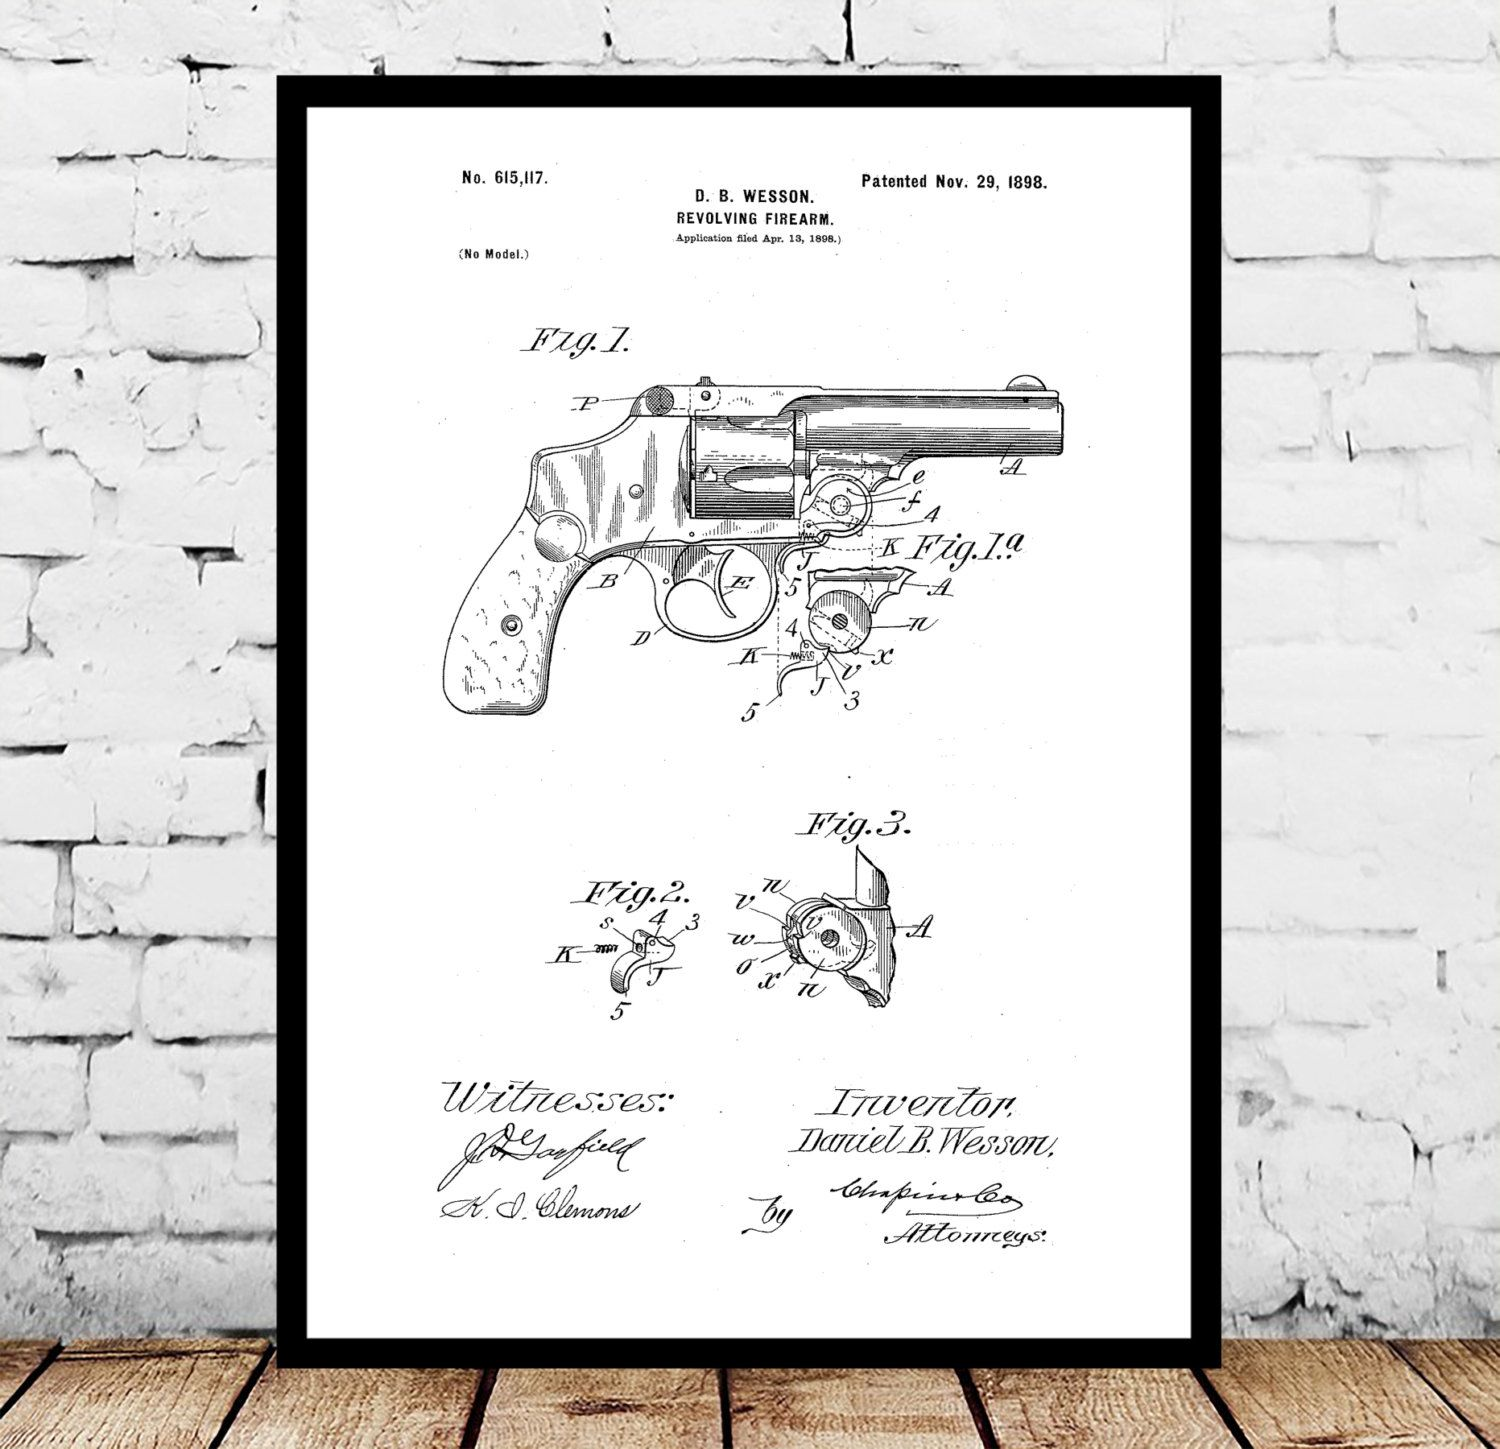 Wesson revolver poster wesson pistol patent wesson pistol print wesson revolver poster wesson pistol patent wesson pistol print wesson pistol art wesson pistol decor wesson pistol blueprint revolver malvernweather Images